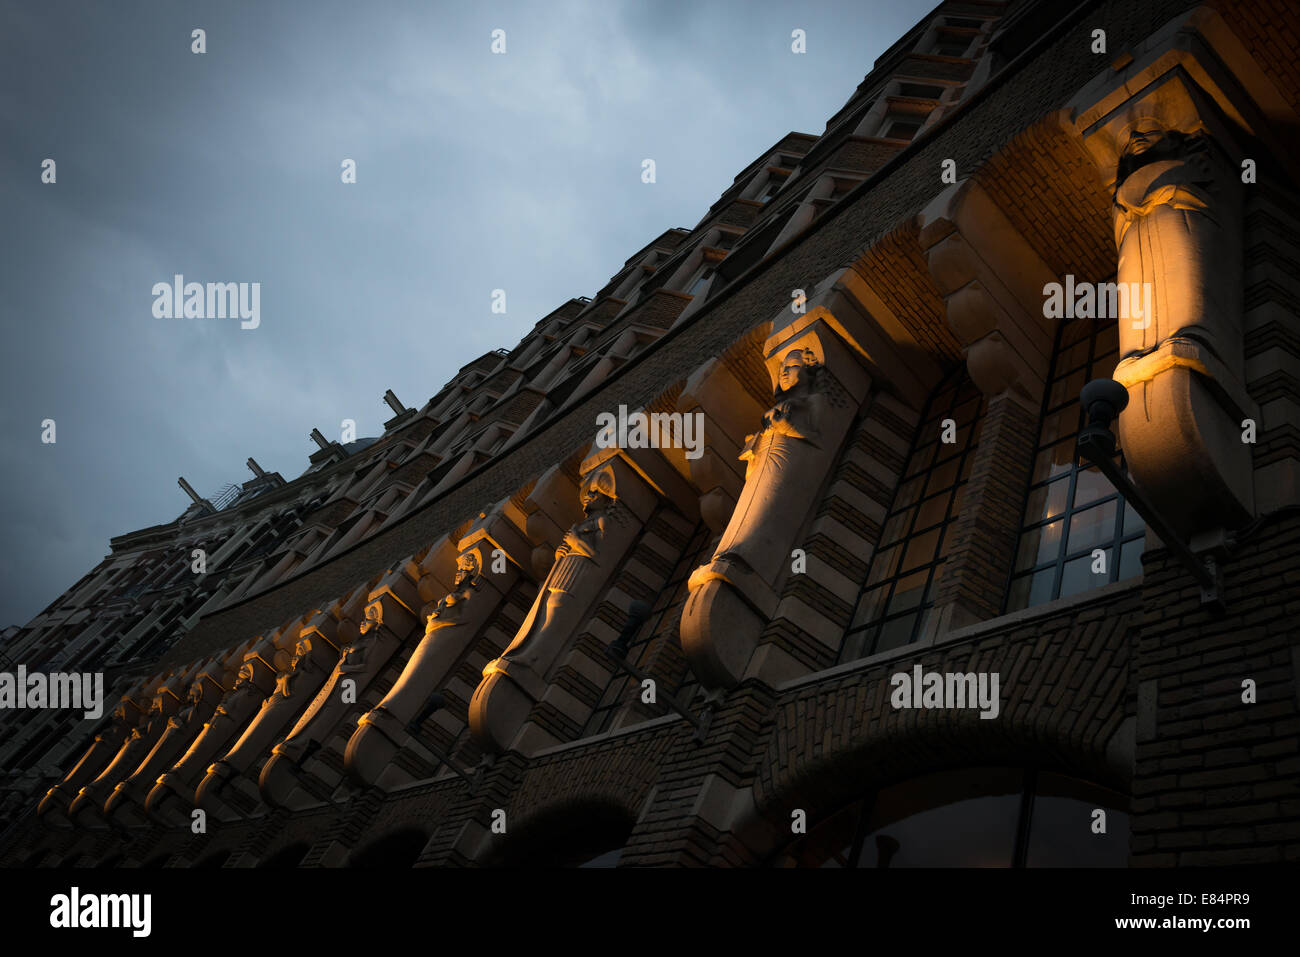 Amsterdam, The Netherlands, illuminated relief figurines in the Hotel American - Stock Image